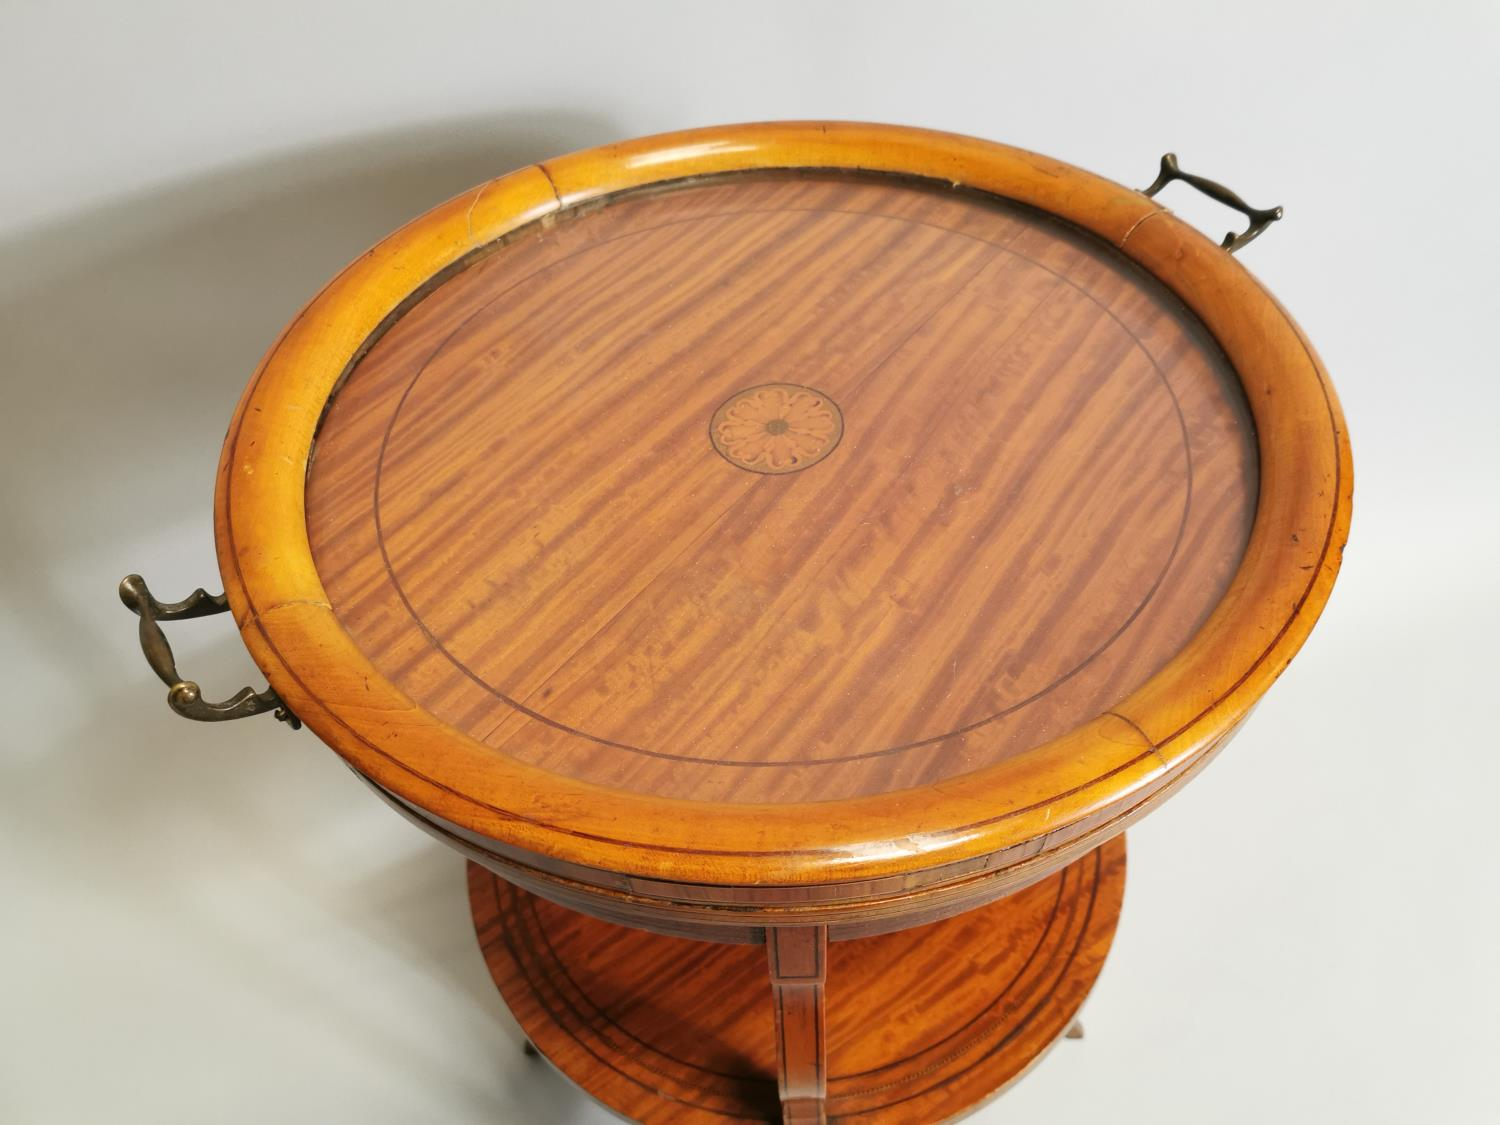 19th. C. satinwood wine table - Image 3 of 5